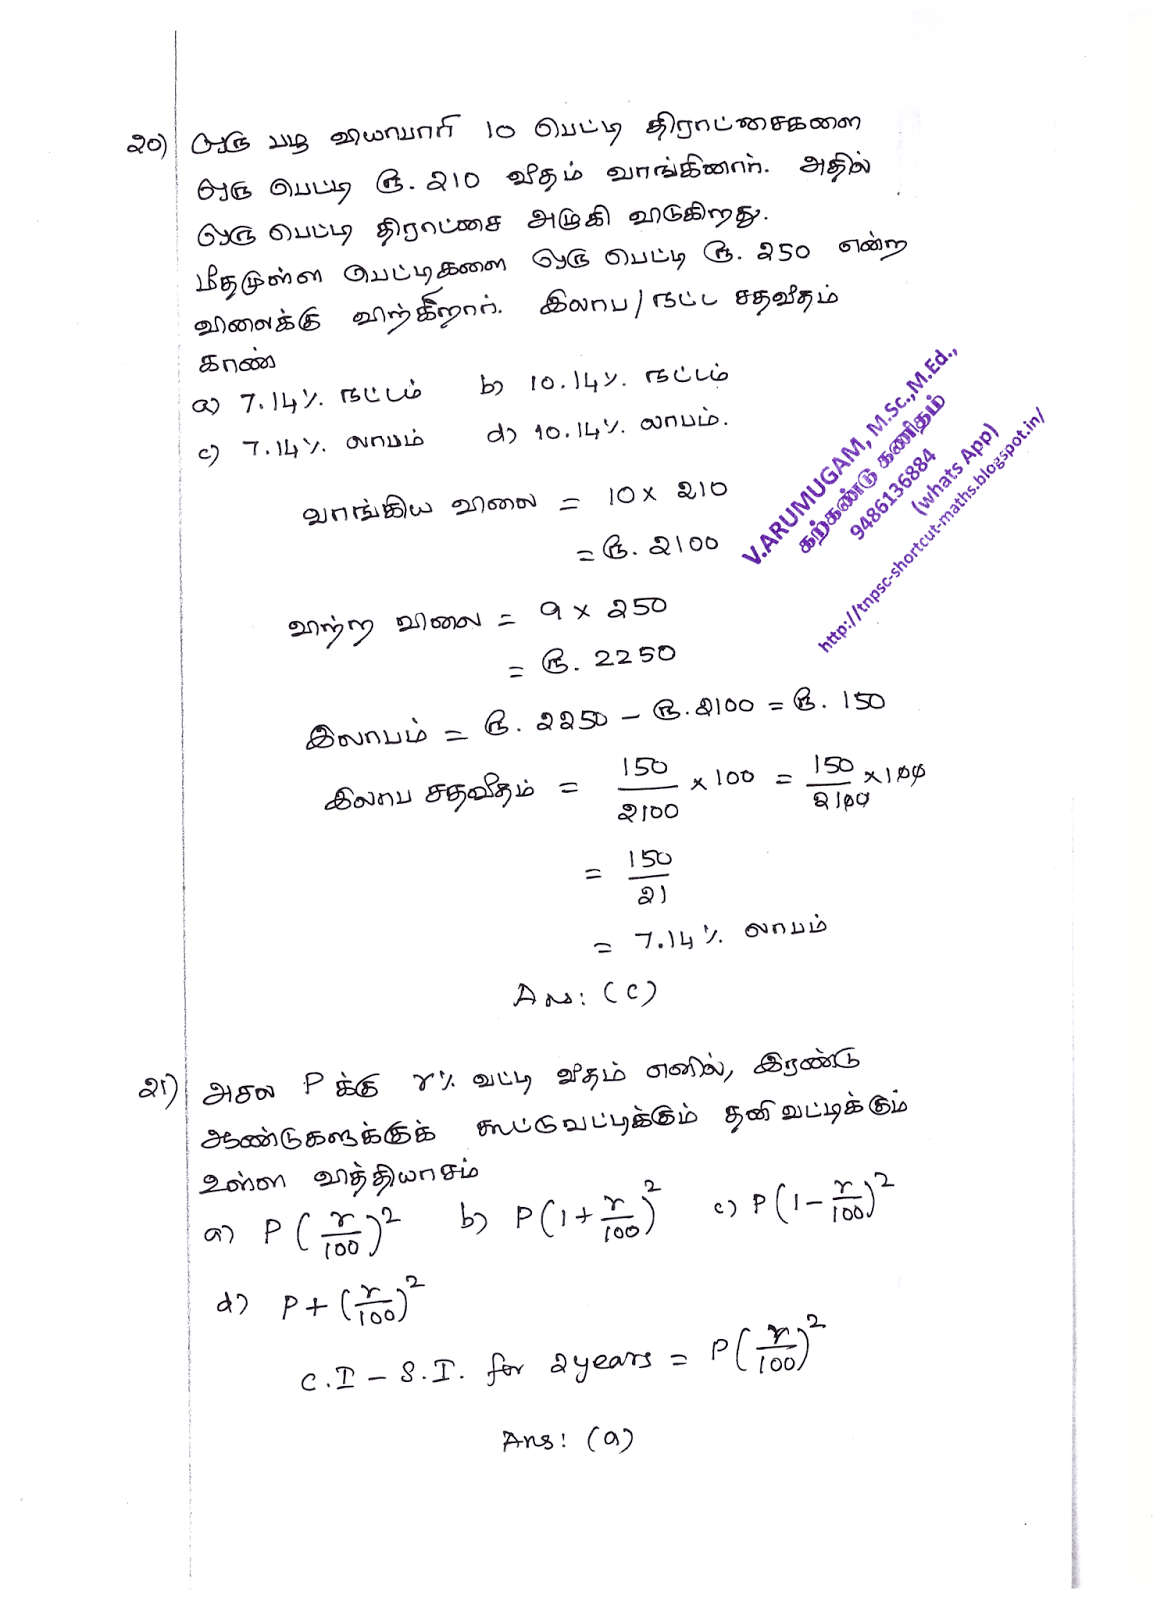 TNPSC-2017-ASSISTANT COMMISSIONER IN THE TAMIL NADU HINDU RELIGIOUS AND CHARITABLE ENDOWMENTS ADMINISTRATION DEPARTMENT INCLUDED IN GROUP- I B SERVICES EXAM-EXAM DATE: 03.09.2017